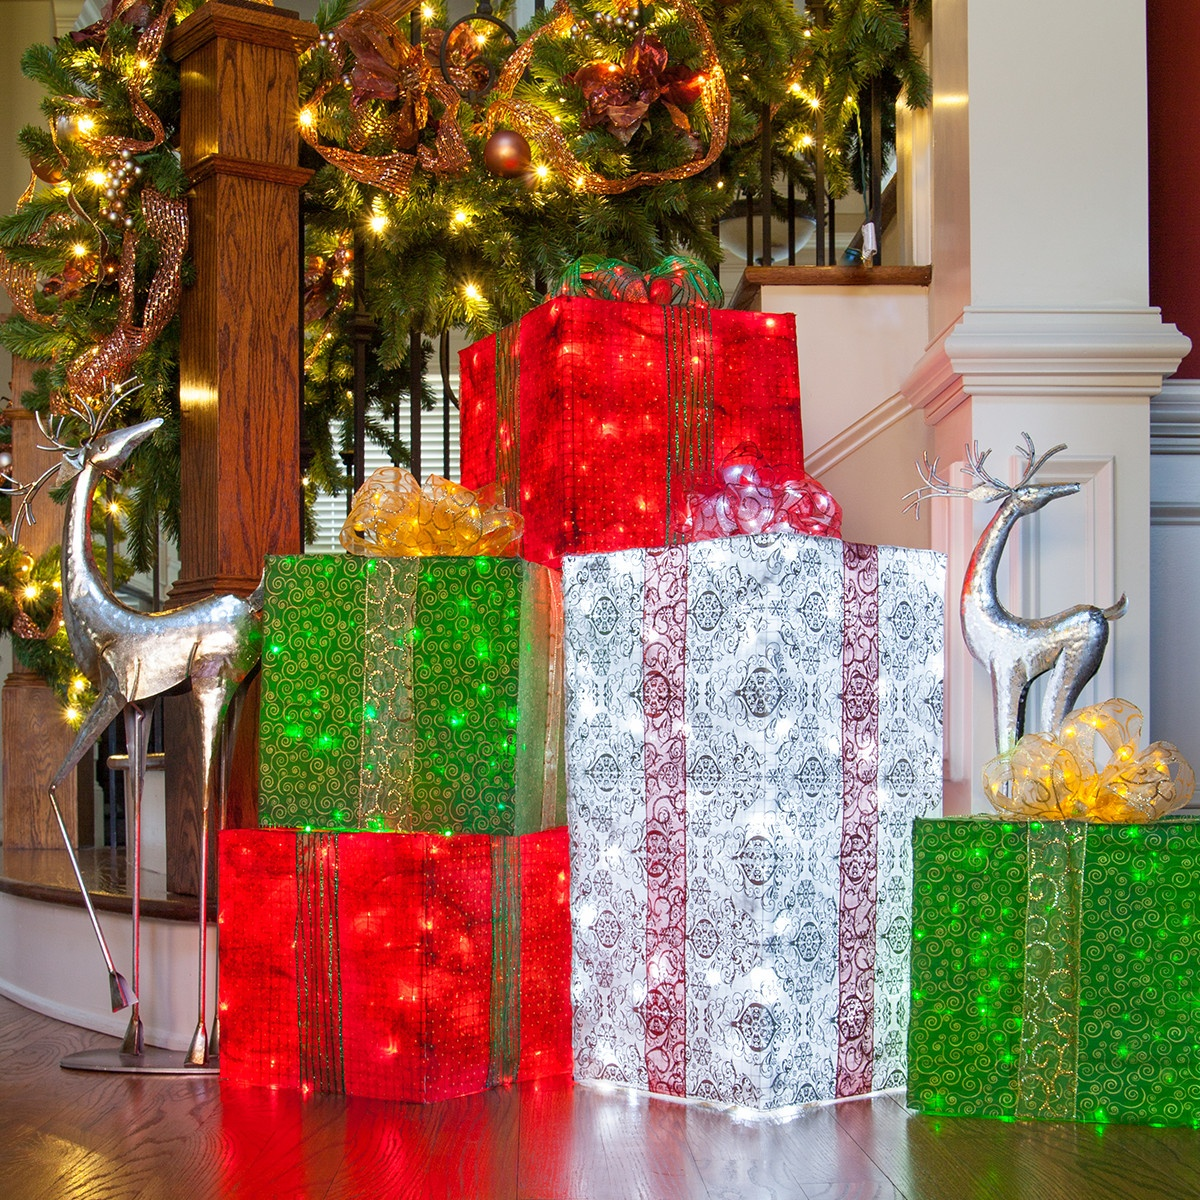 use chicken wire fabric and string lights to create diy lighted christmas presents - Light Up Presents Christmas Decorations